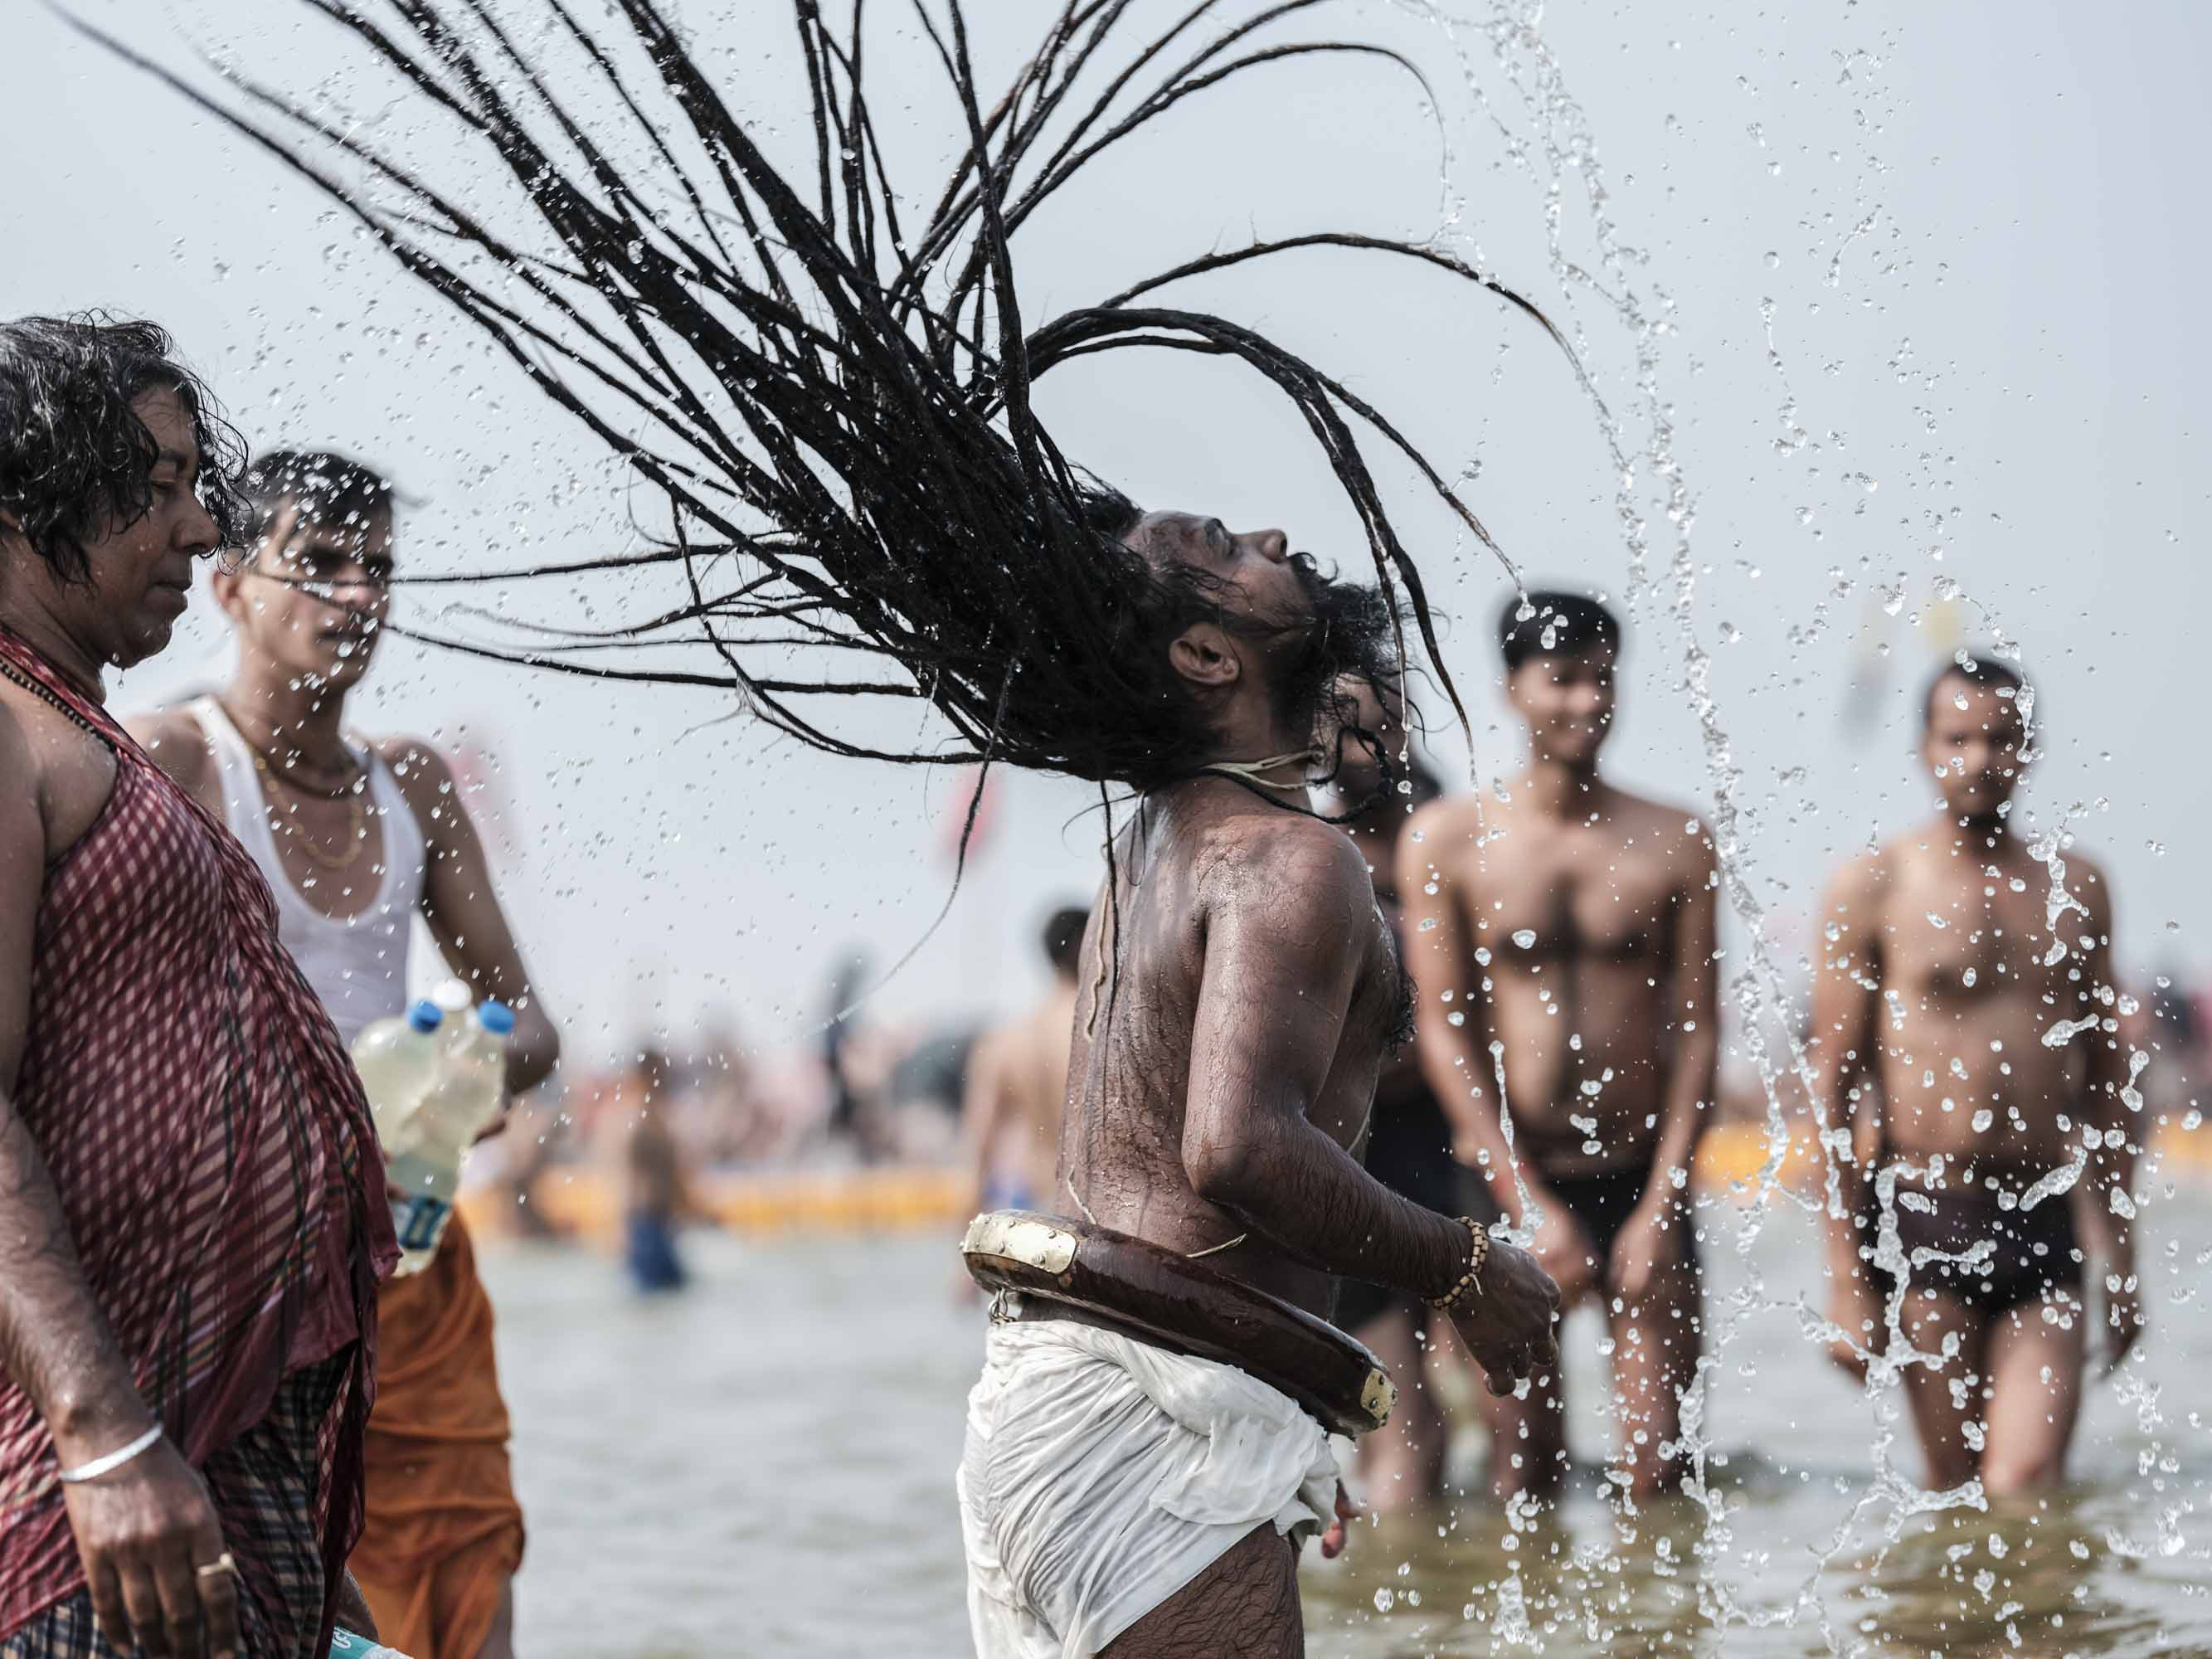 long hair baba rasta water splash pilgrims Kumbh mela 2019 India Allahabad Prayagraj Ardh hindu religious Festival event rivers photographer jose jeuland photography